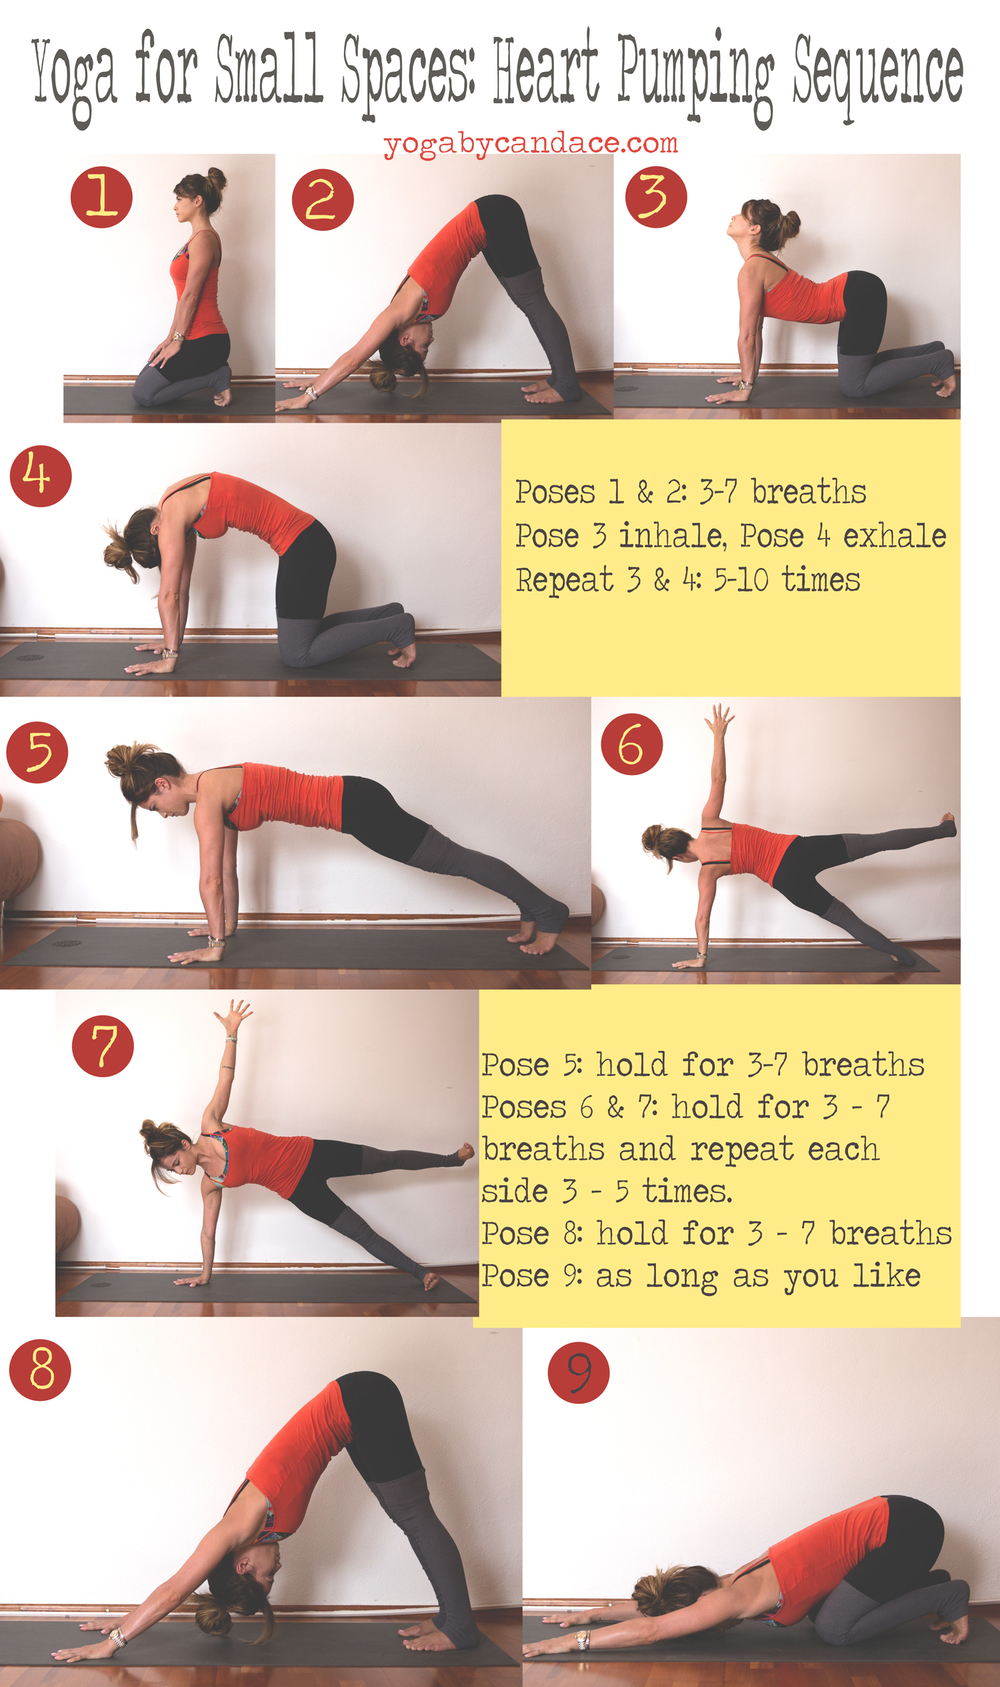 Pin now, practice later. Yoga for small spaces: heart pumping sequence Wearing: alo pants.